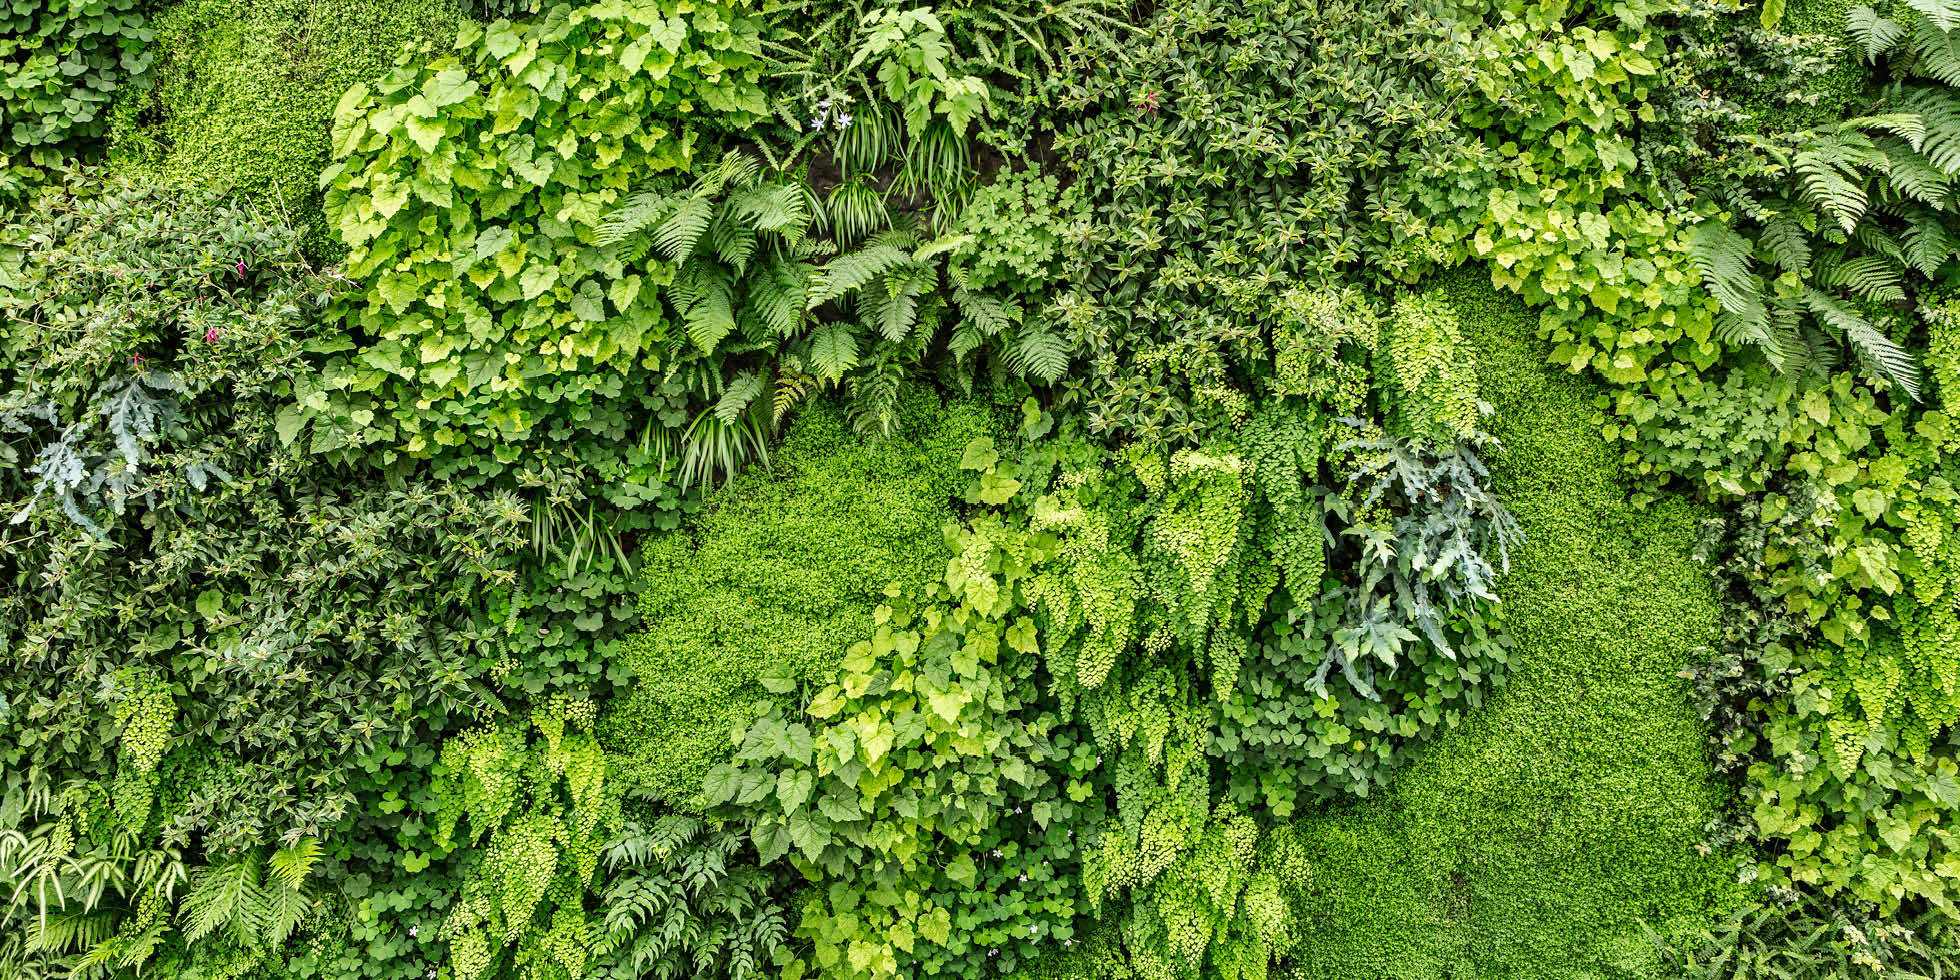 SFMOMA Living Wall by Habitat Horticulture - View 8